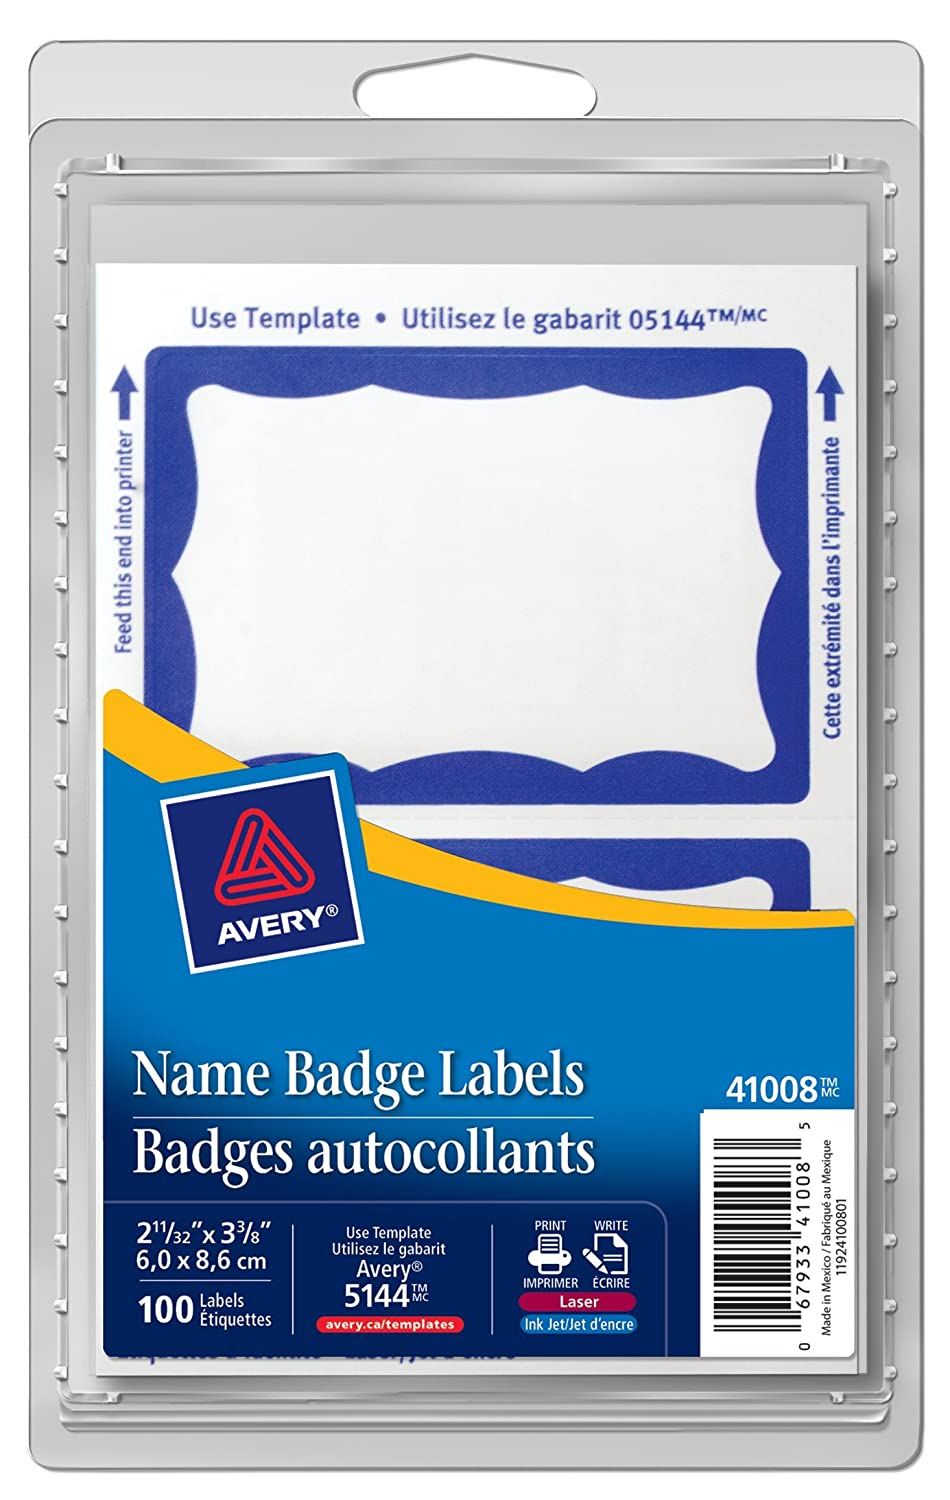 Avery Name Badge Labels for Laser and Inkjet Printers, 2-11/12 x 3-3/8, Blue Border, Rectangle, 100 Pack (41008) 2-11/12 x 3-3/8